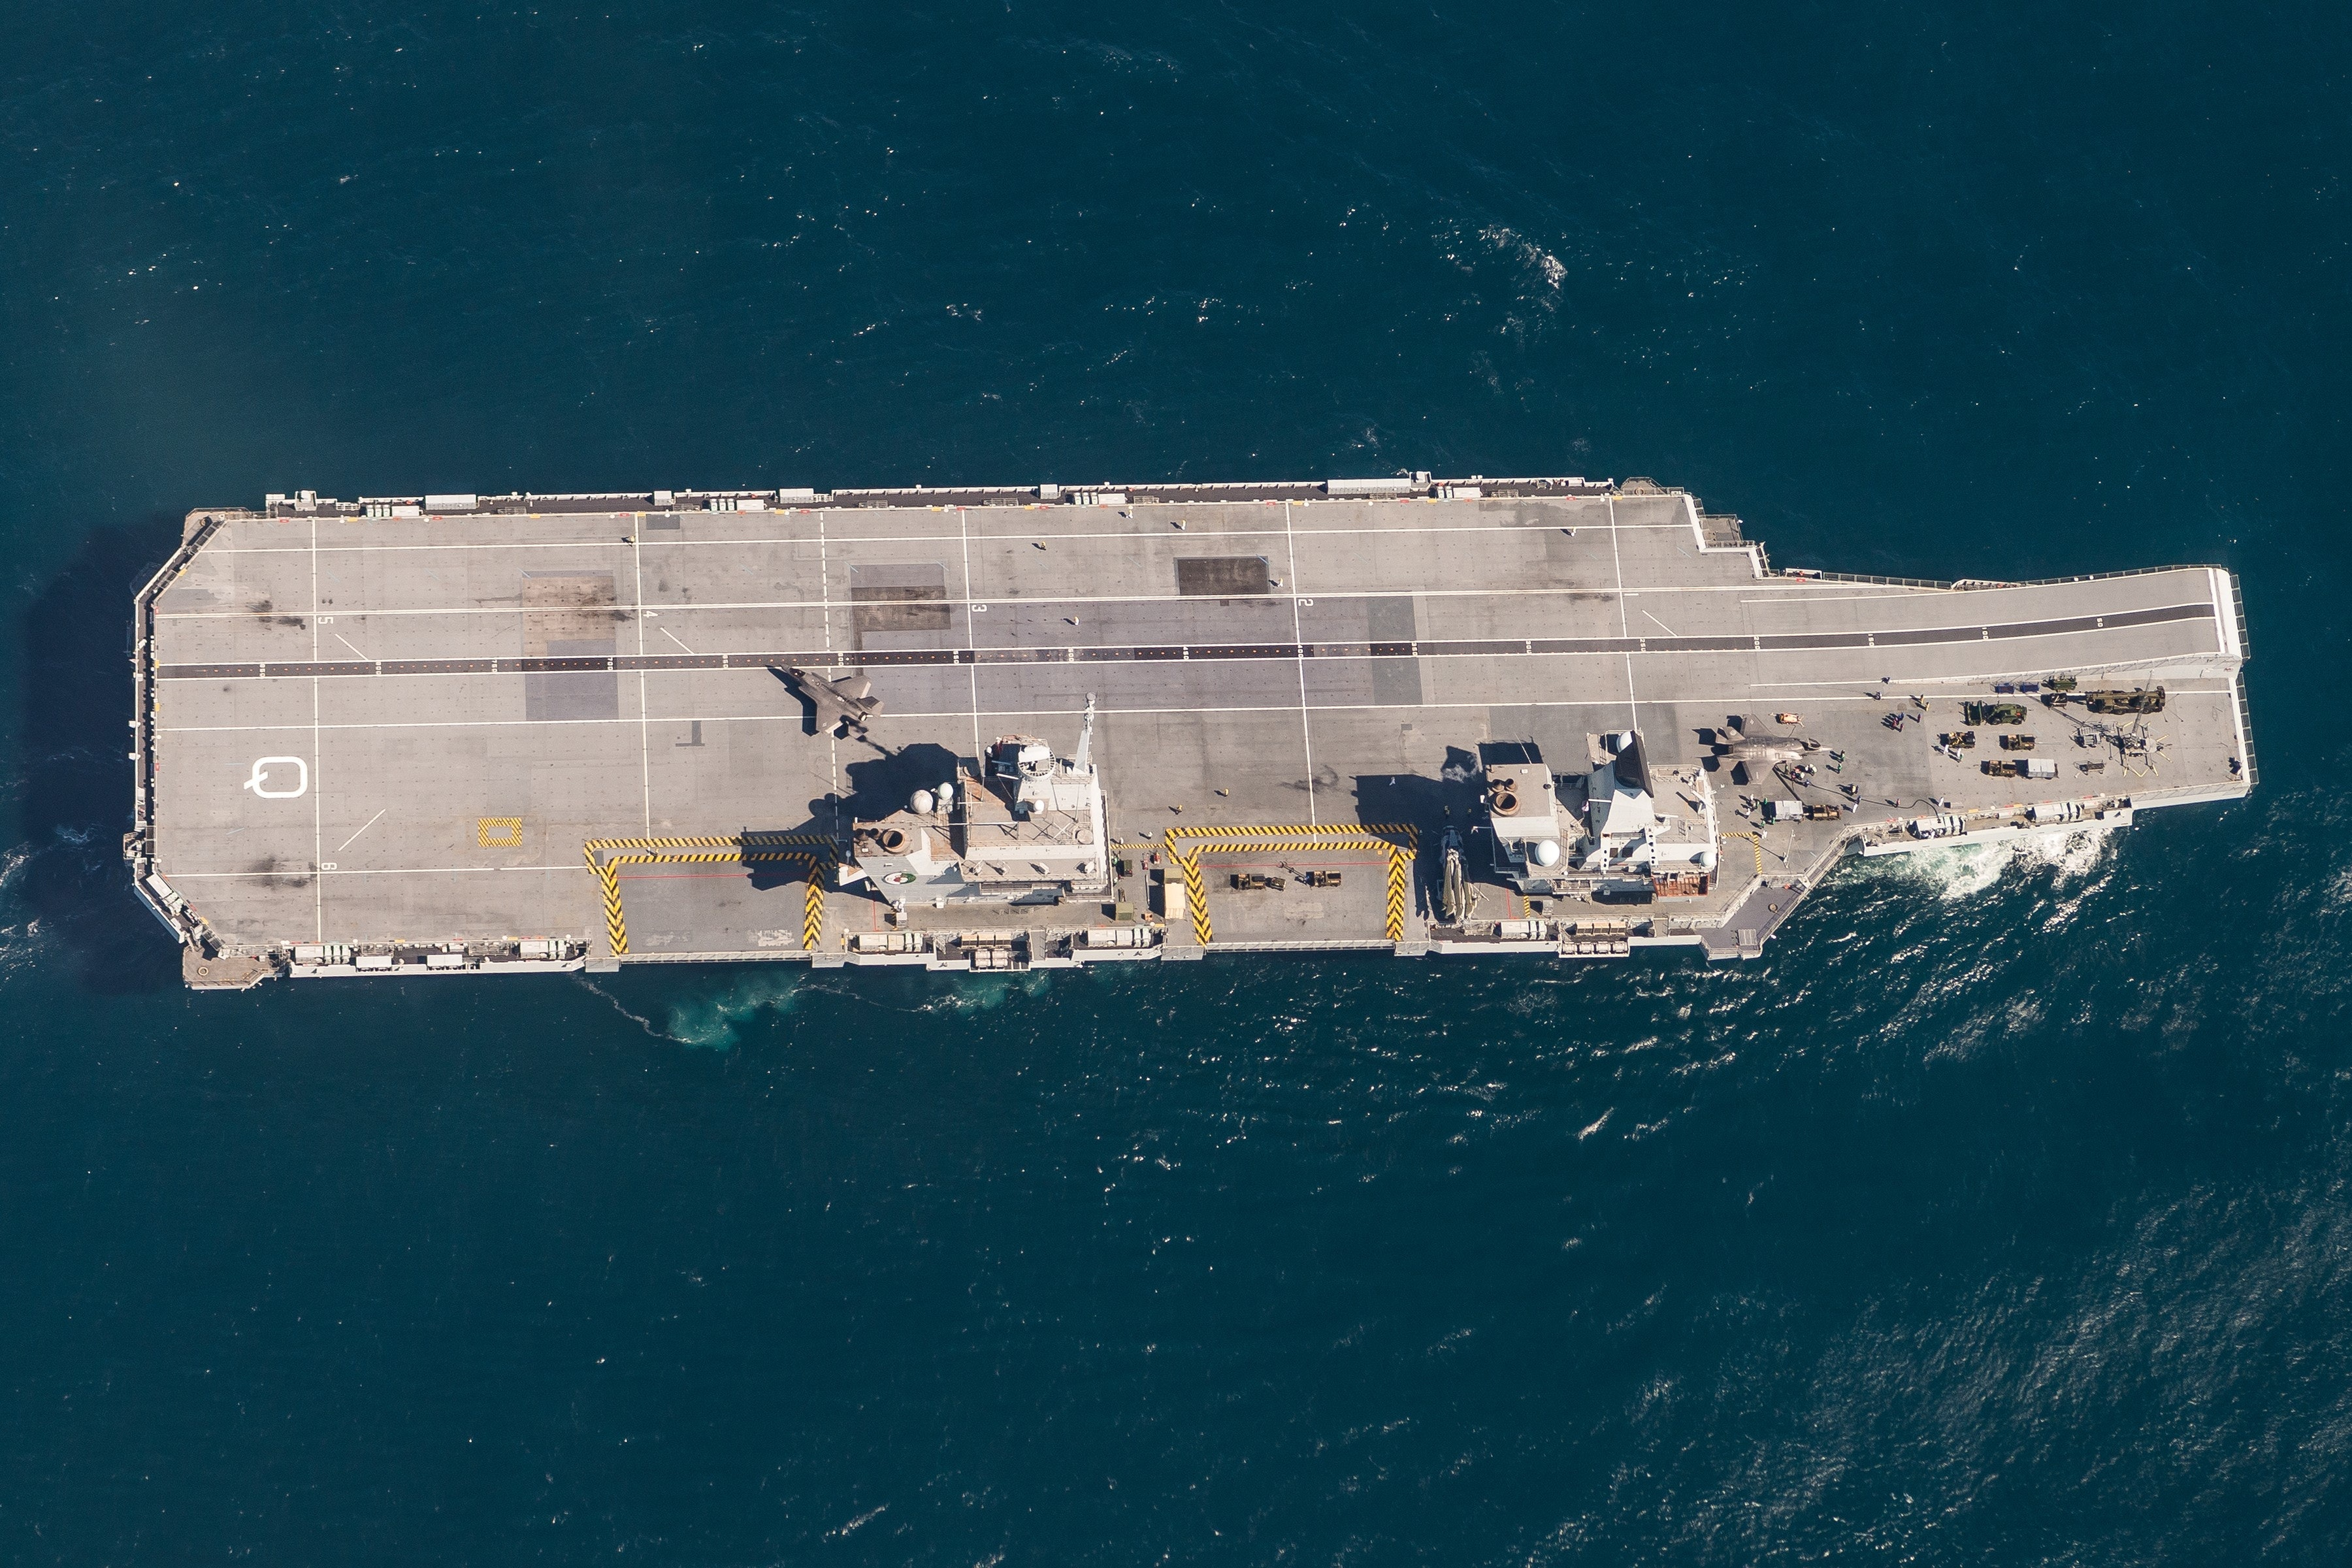 F-35B FIGHTER JETS LAND ONBOARD ROYAL NAVY AIRCRAFT CARRIER FOR FIRST TIME